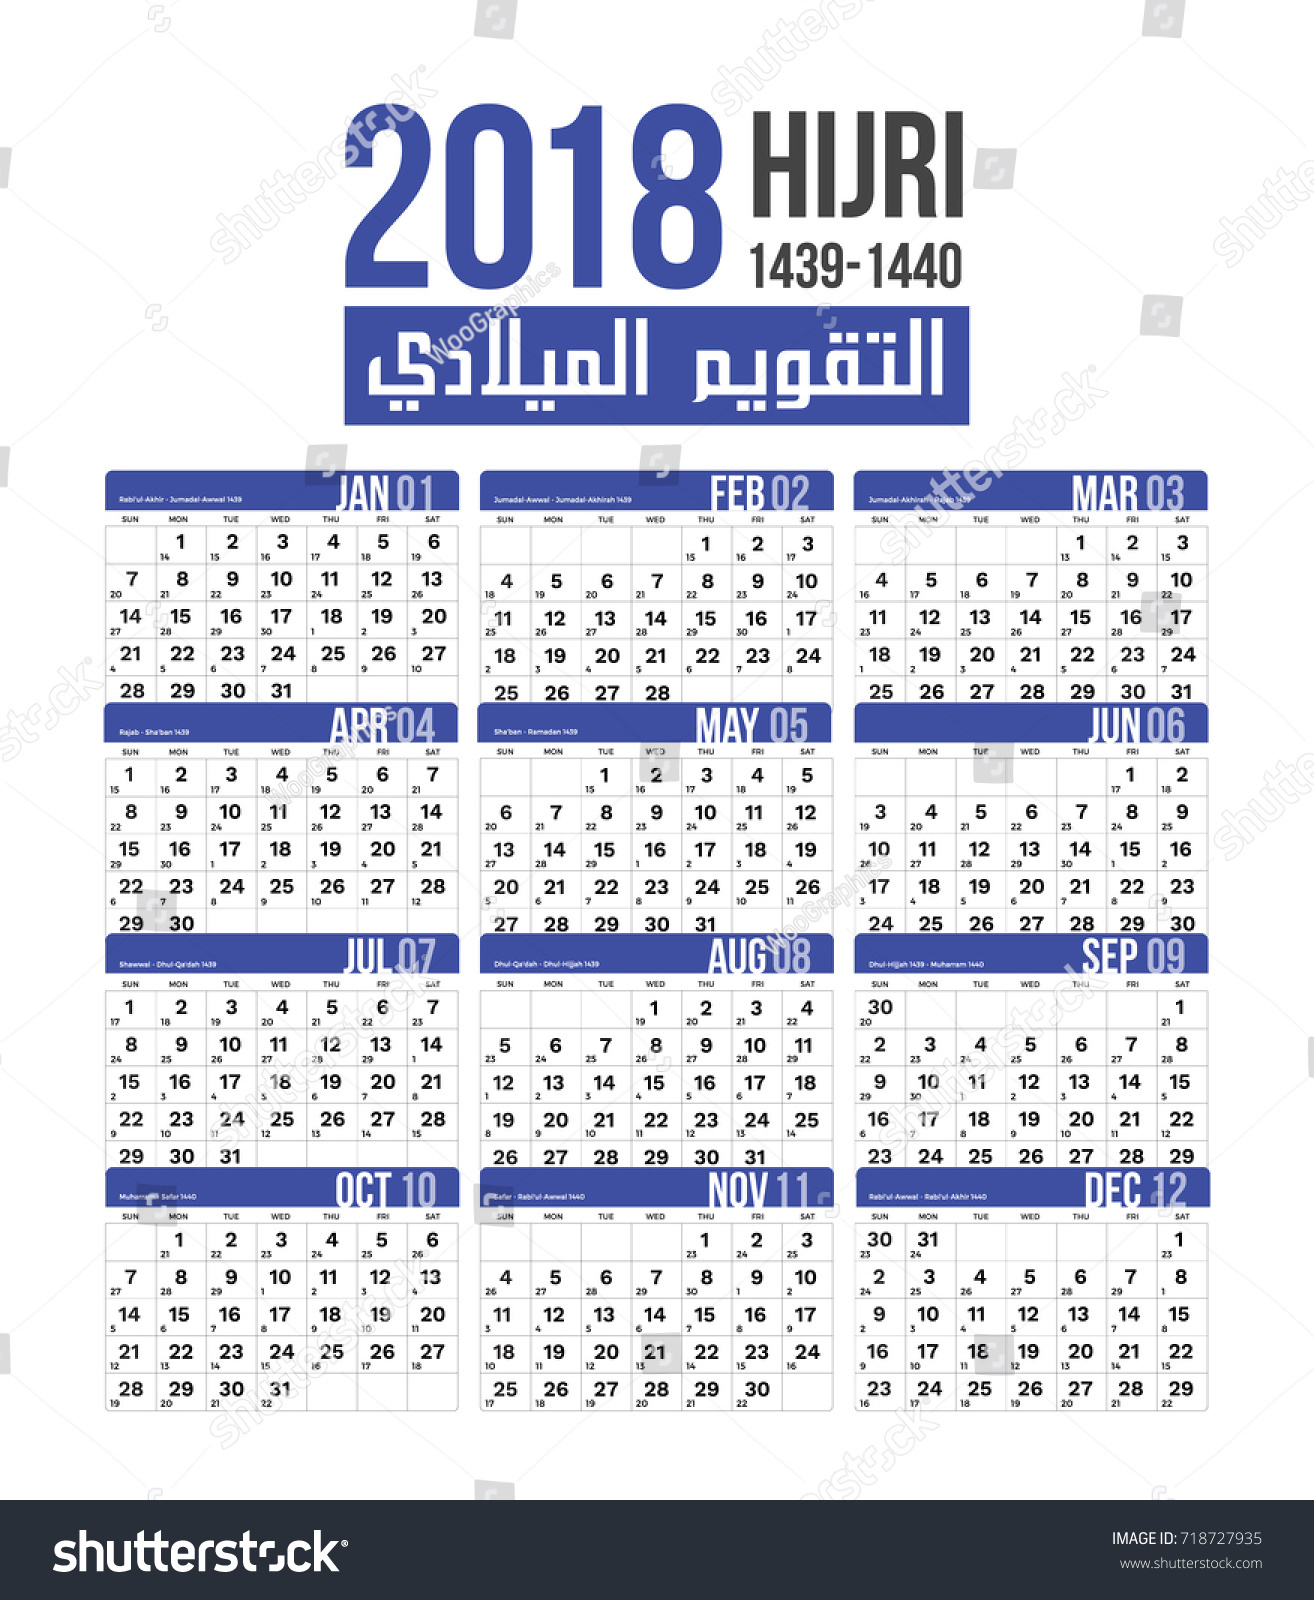 Hijri and gregorian calendar free download